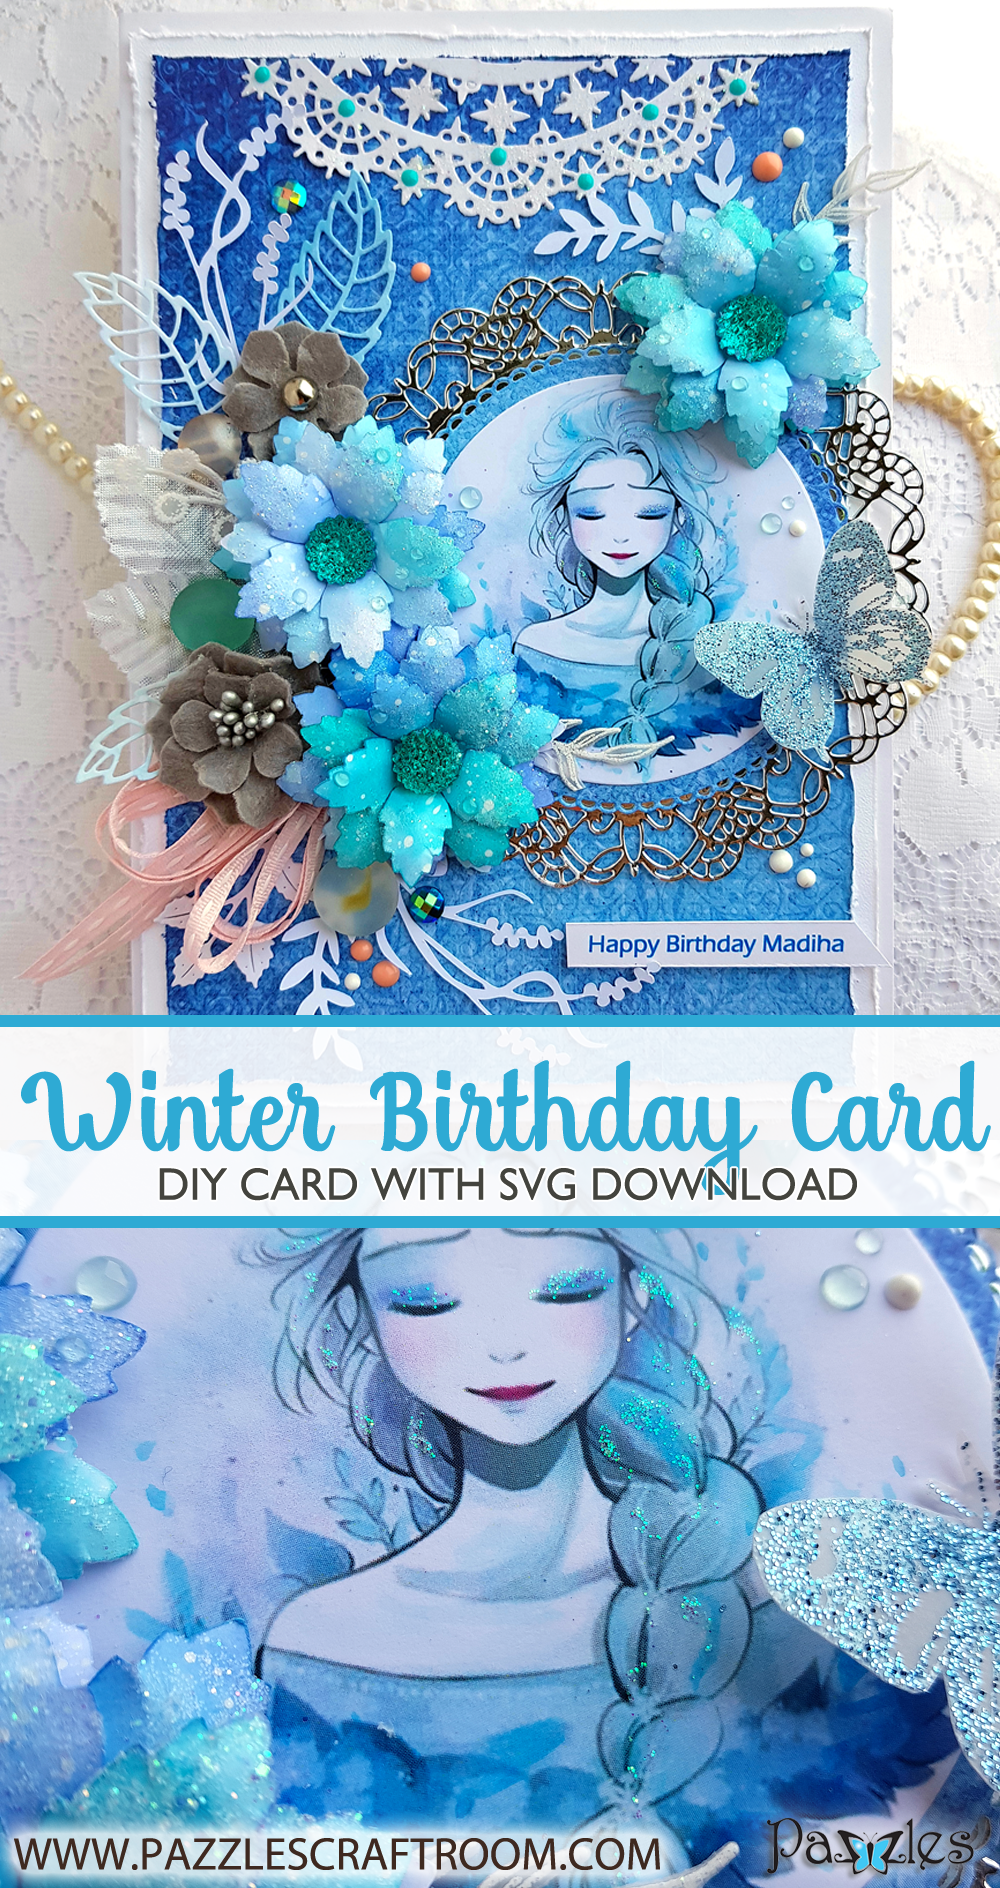 Pazzles DIY Winter Princess Birthday Card with instant SVG download. Compatible with all major electronic cutters including Pazzles Inspiration, Cricut, and Silhouette Cameo. Design by Nida Tanweer.